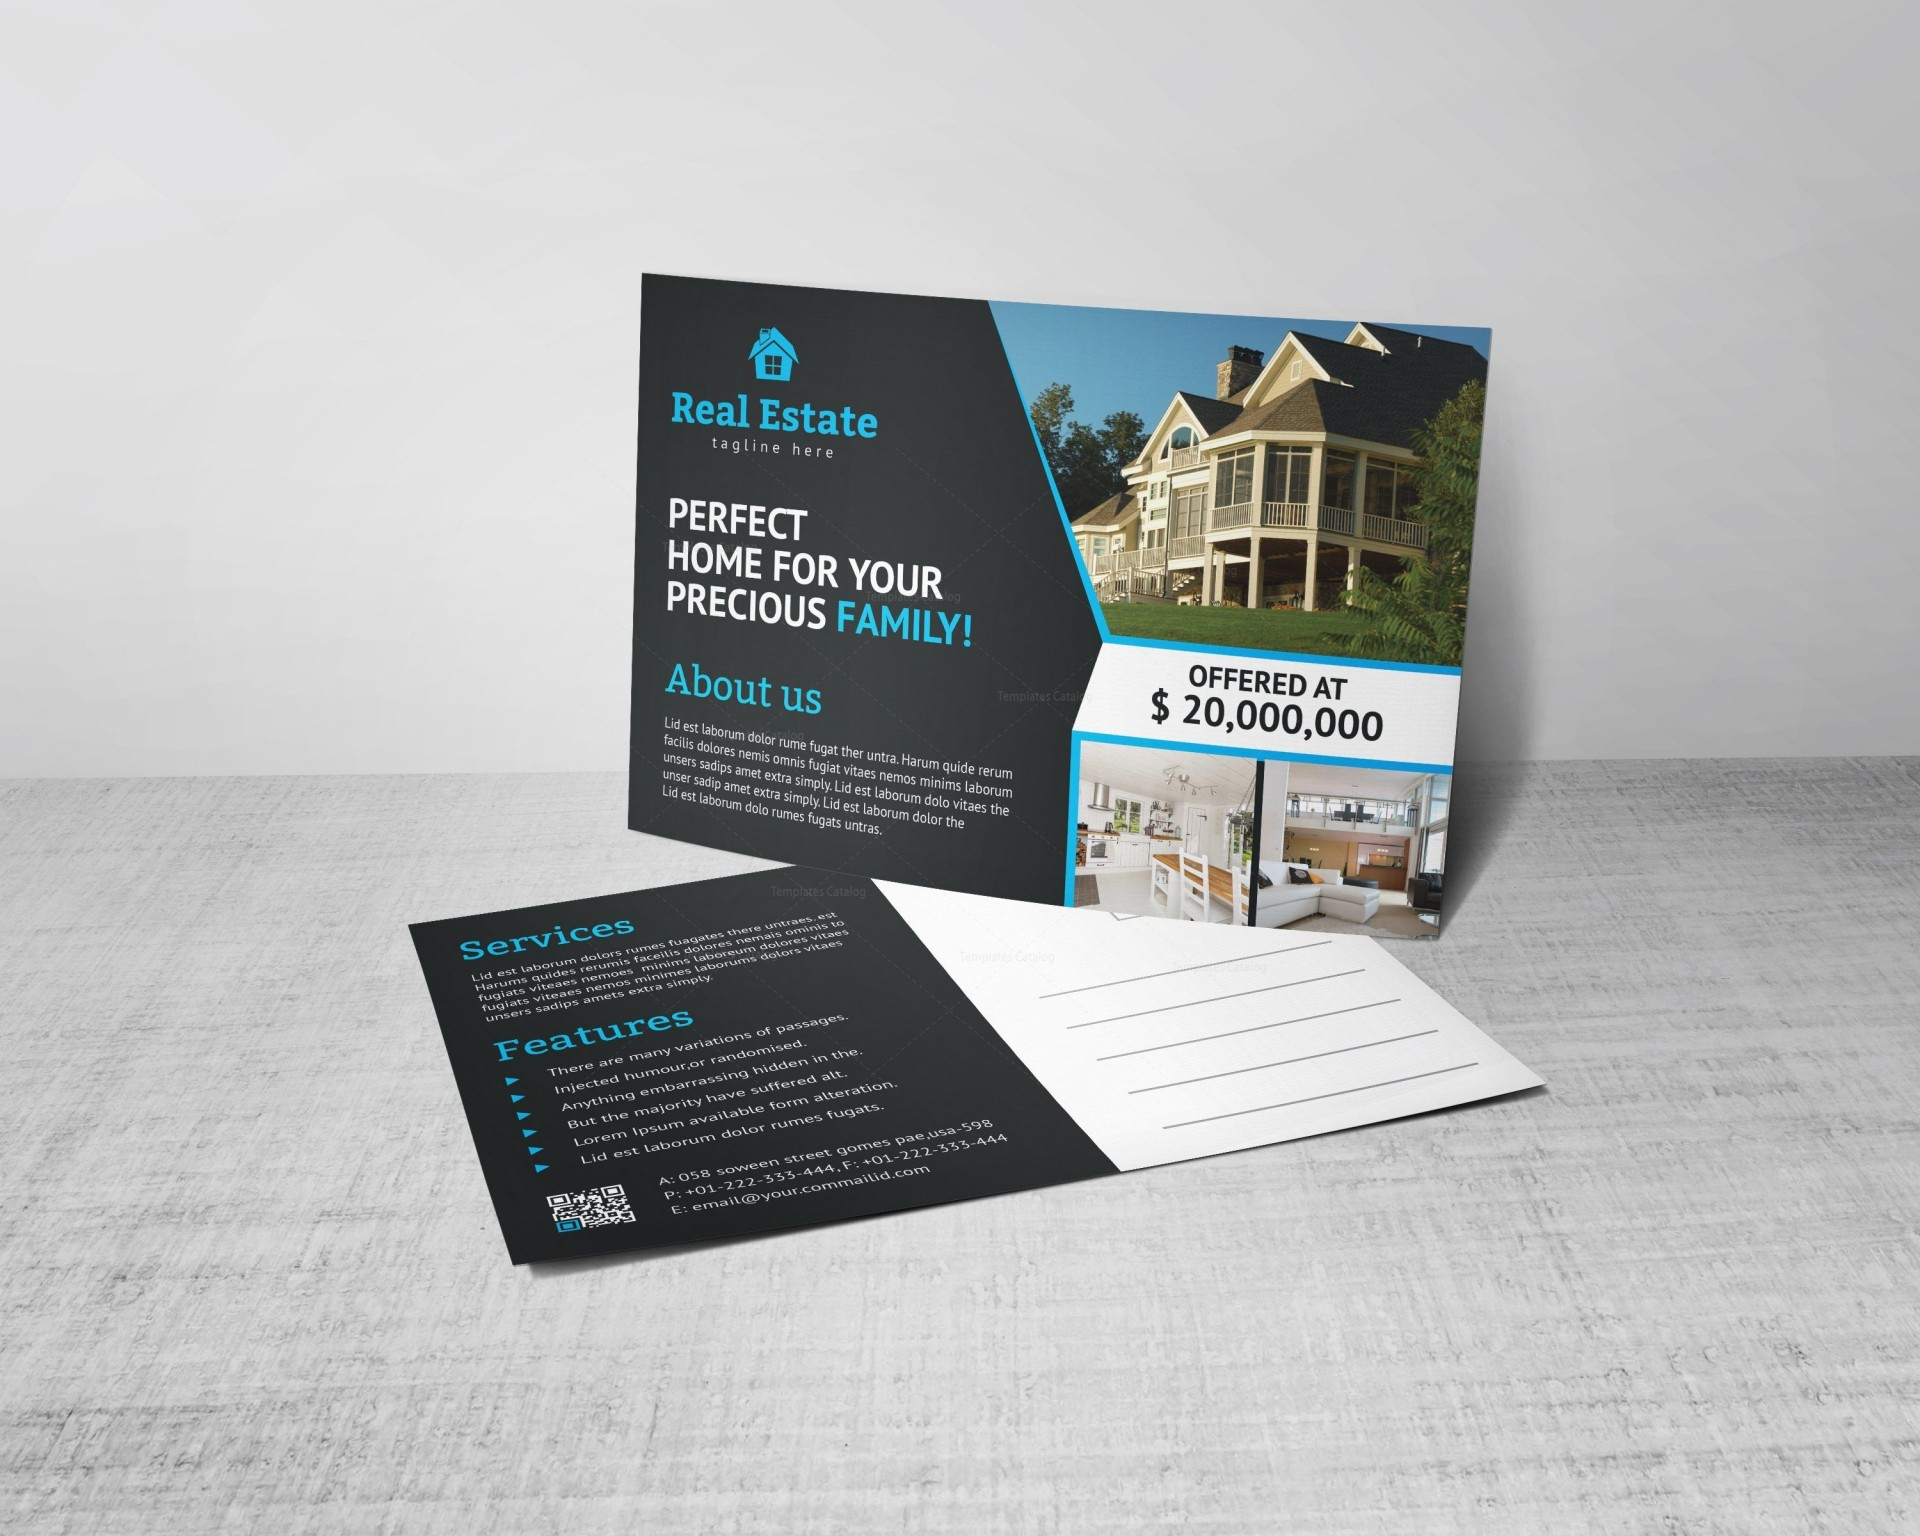 008 Phenomenal Real Estate Postcard Template Concept  Agent For Photoshop Investor1920